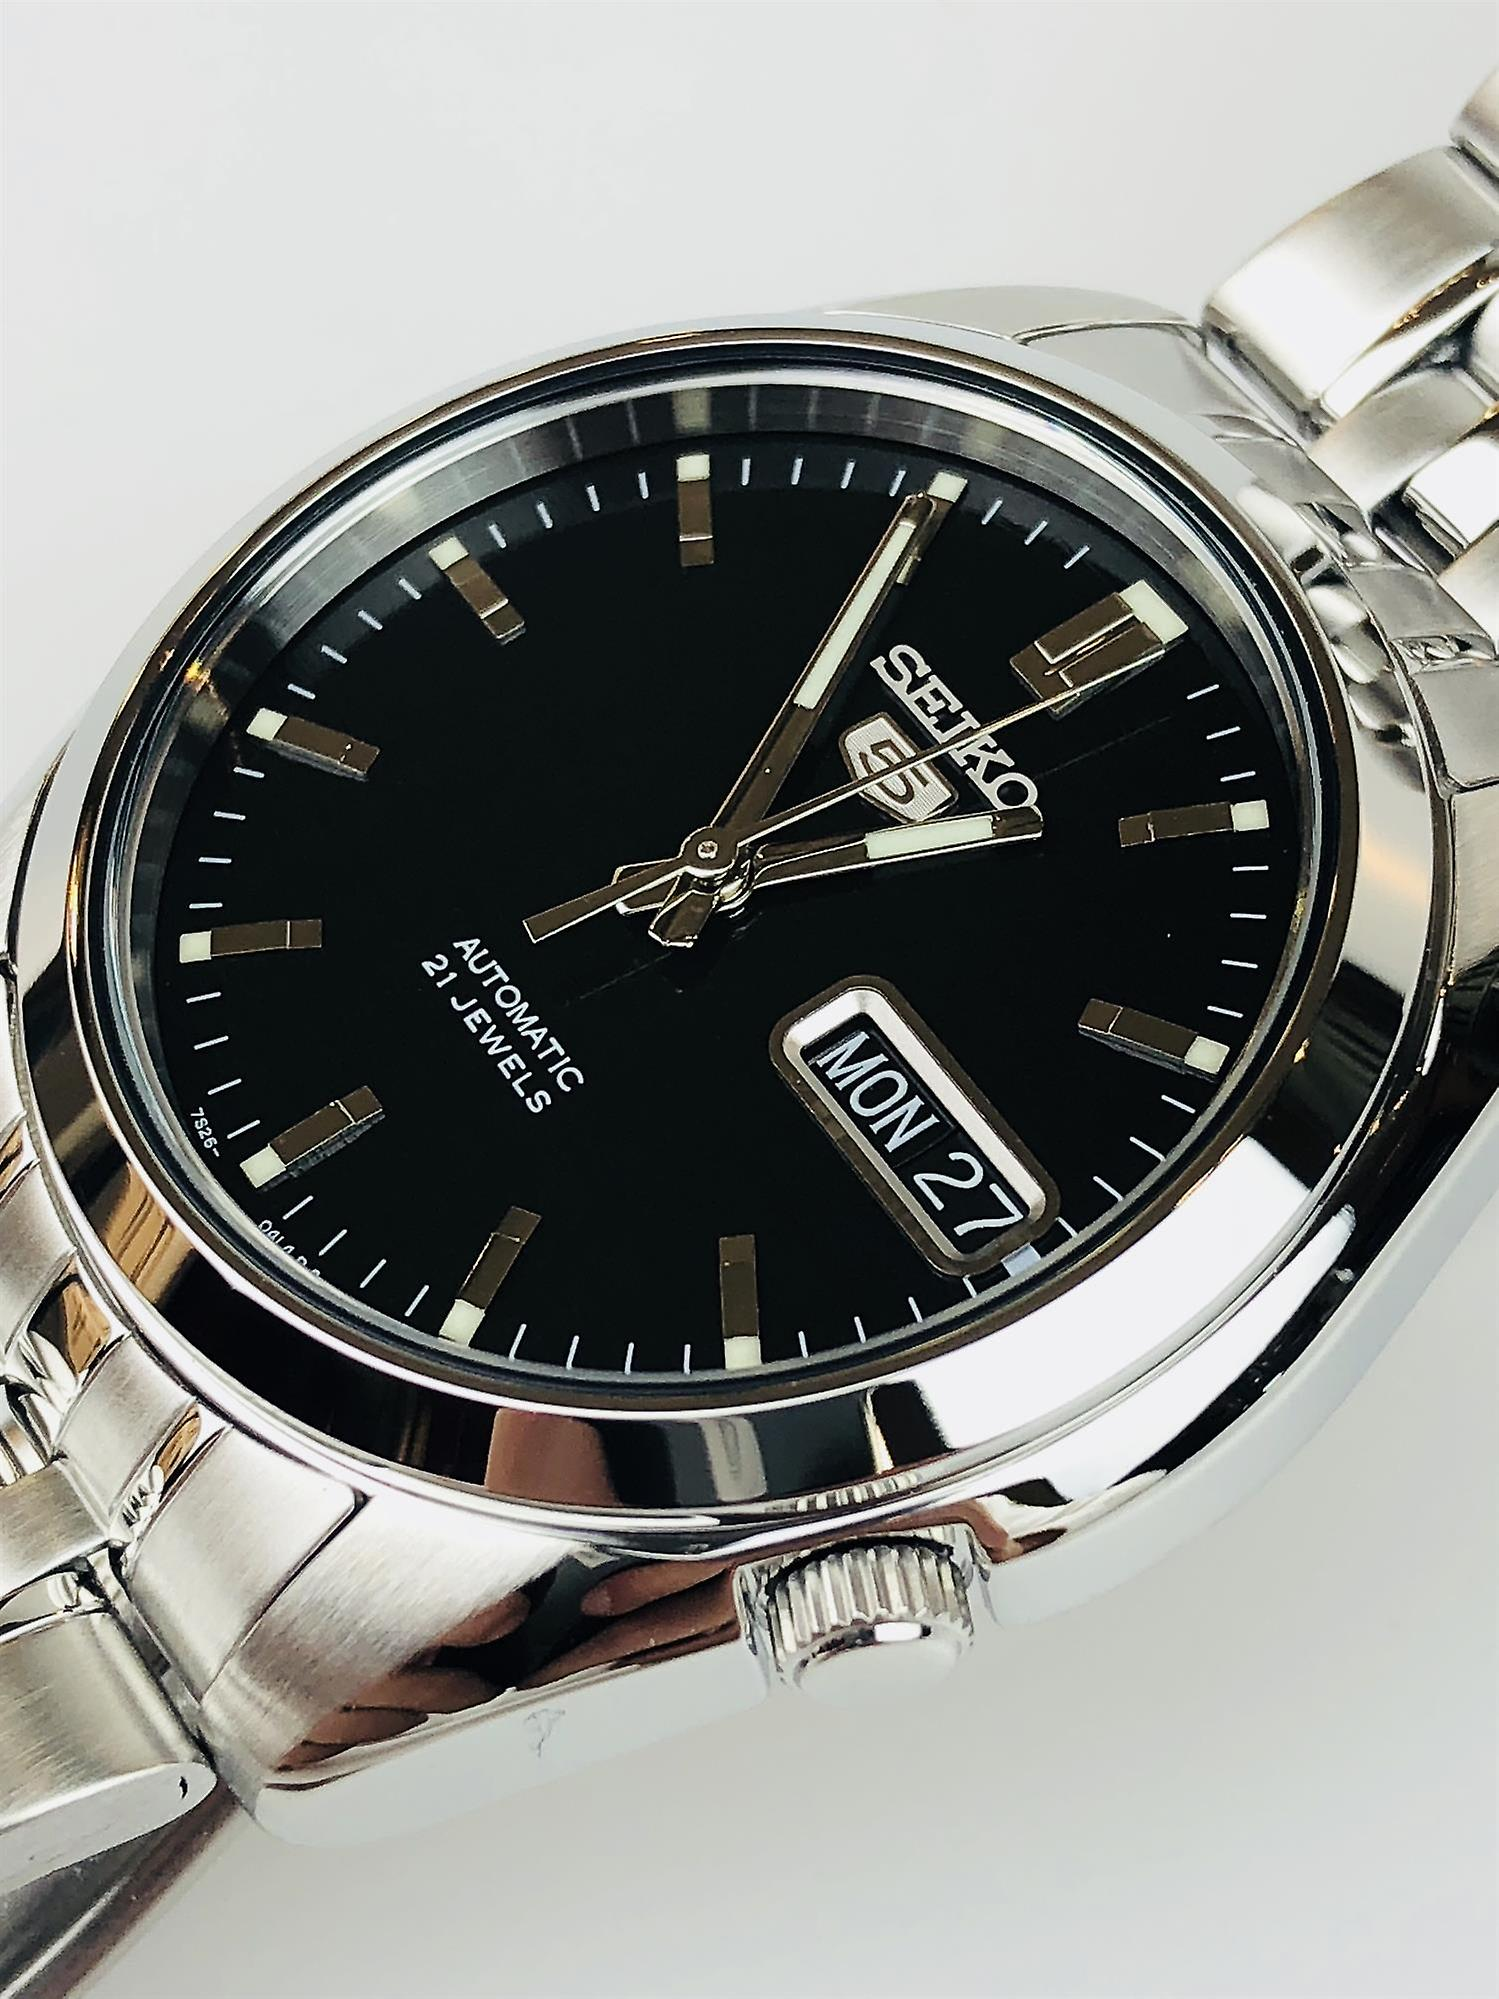 Seiko 5 Automatic Black Dial Stainless Steel Men's Watch SNK361K1